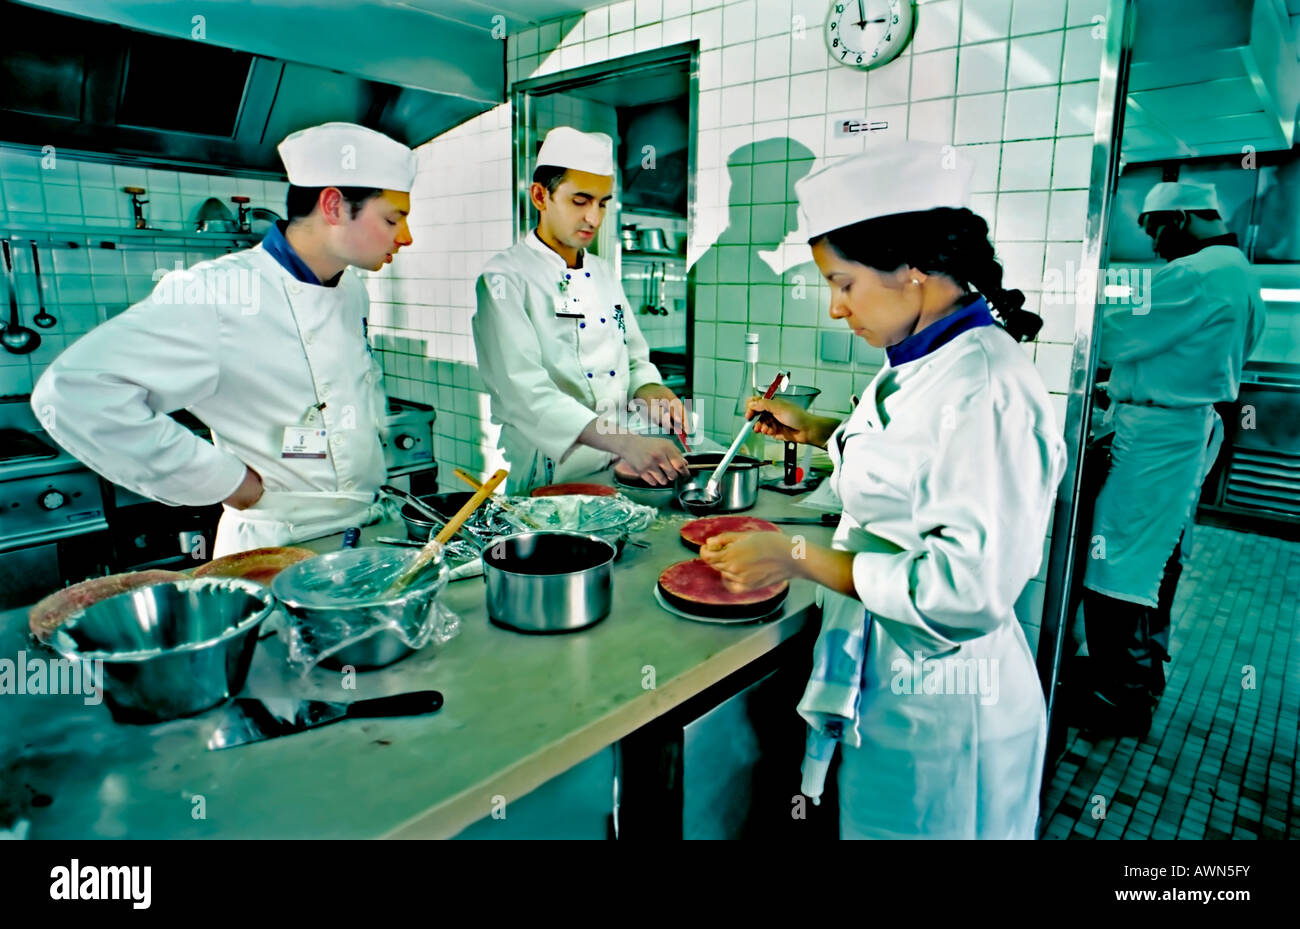 Cooking Schools Stock Photos & Cooking Schools Stock Images - Alamy